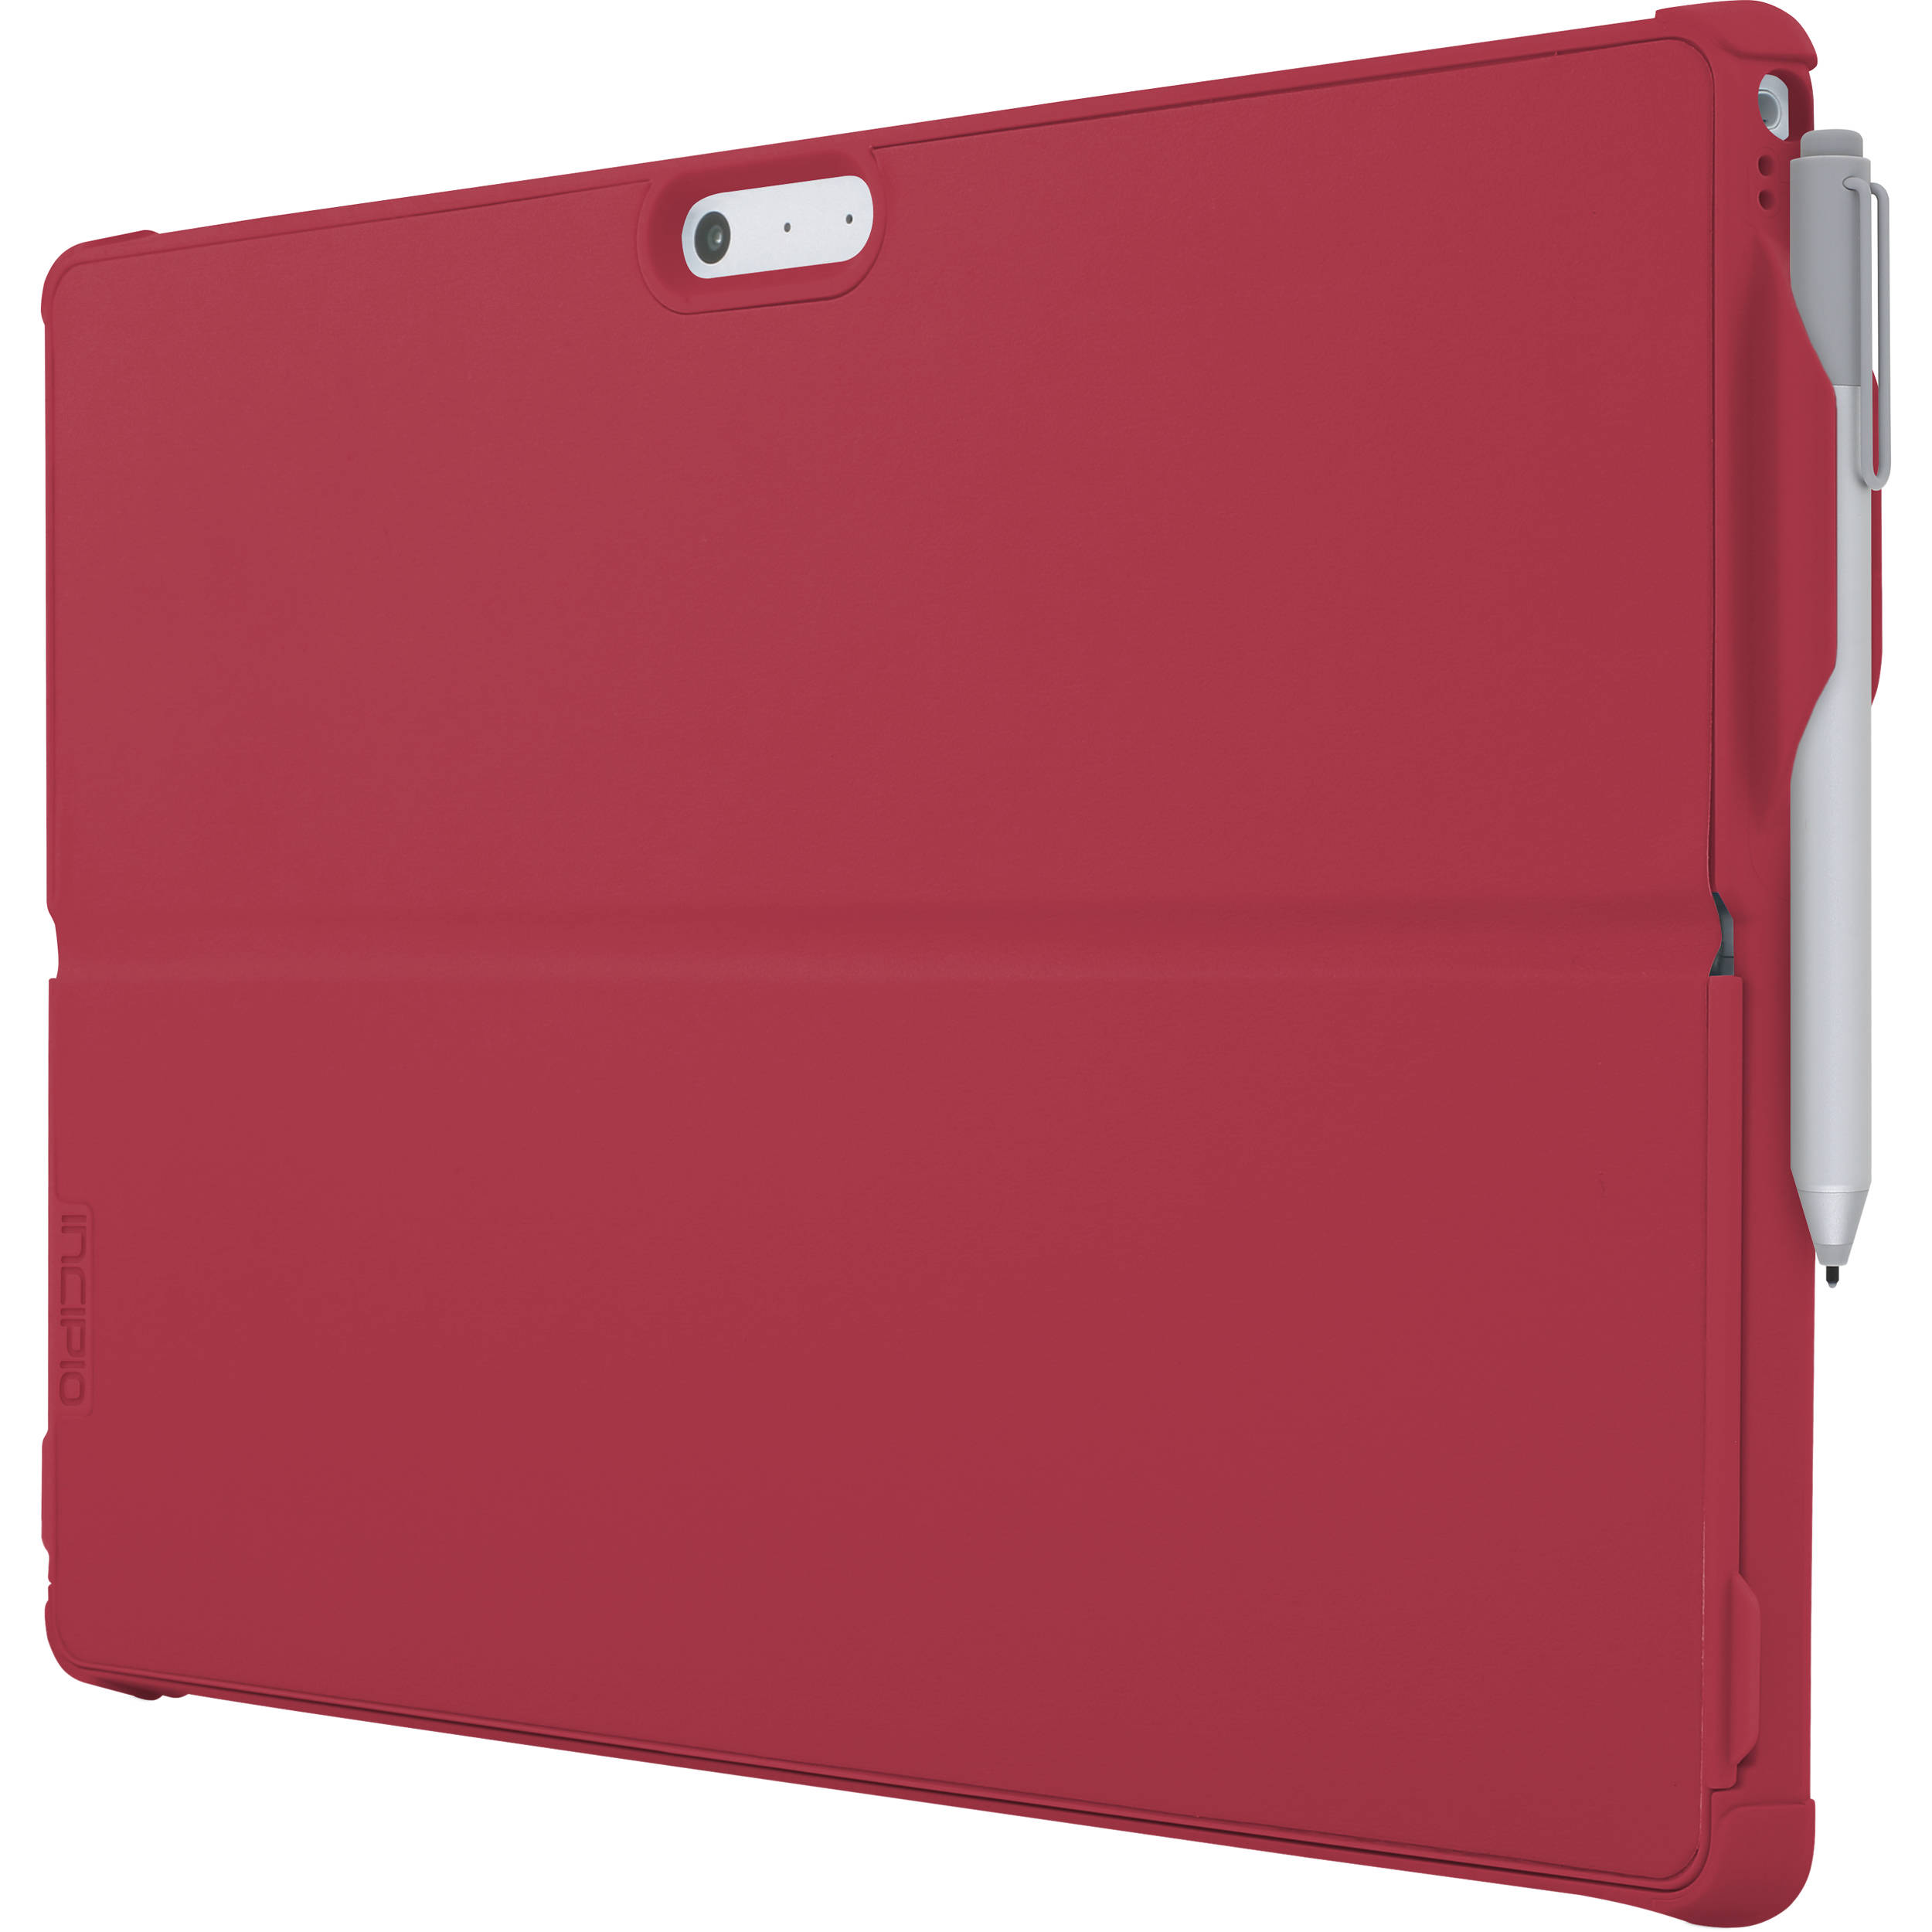 size 40 09a5f 79f7b Incipio Feather Hybrid Case with Shock-Absorbing Frame for Surface Pro/Pro  4 (Red)